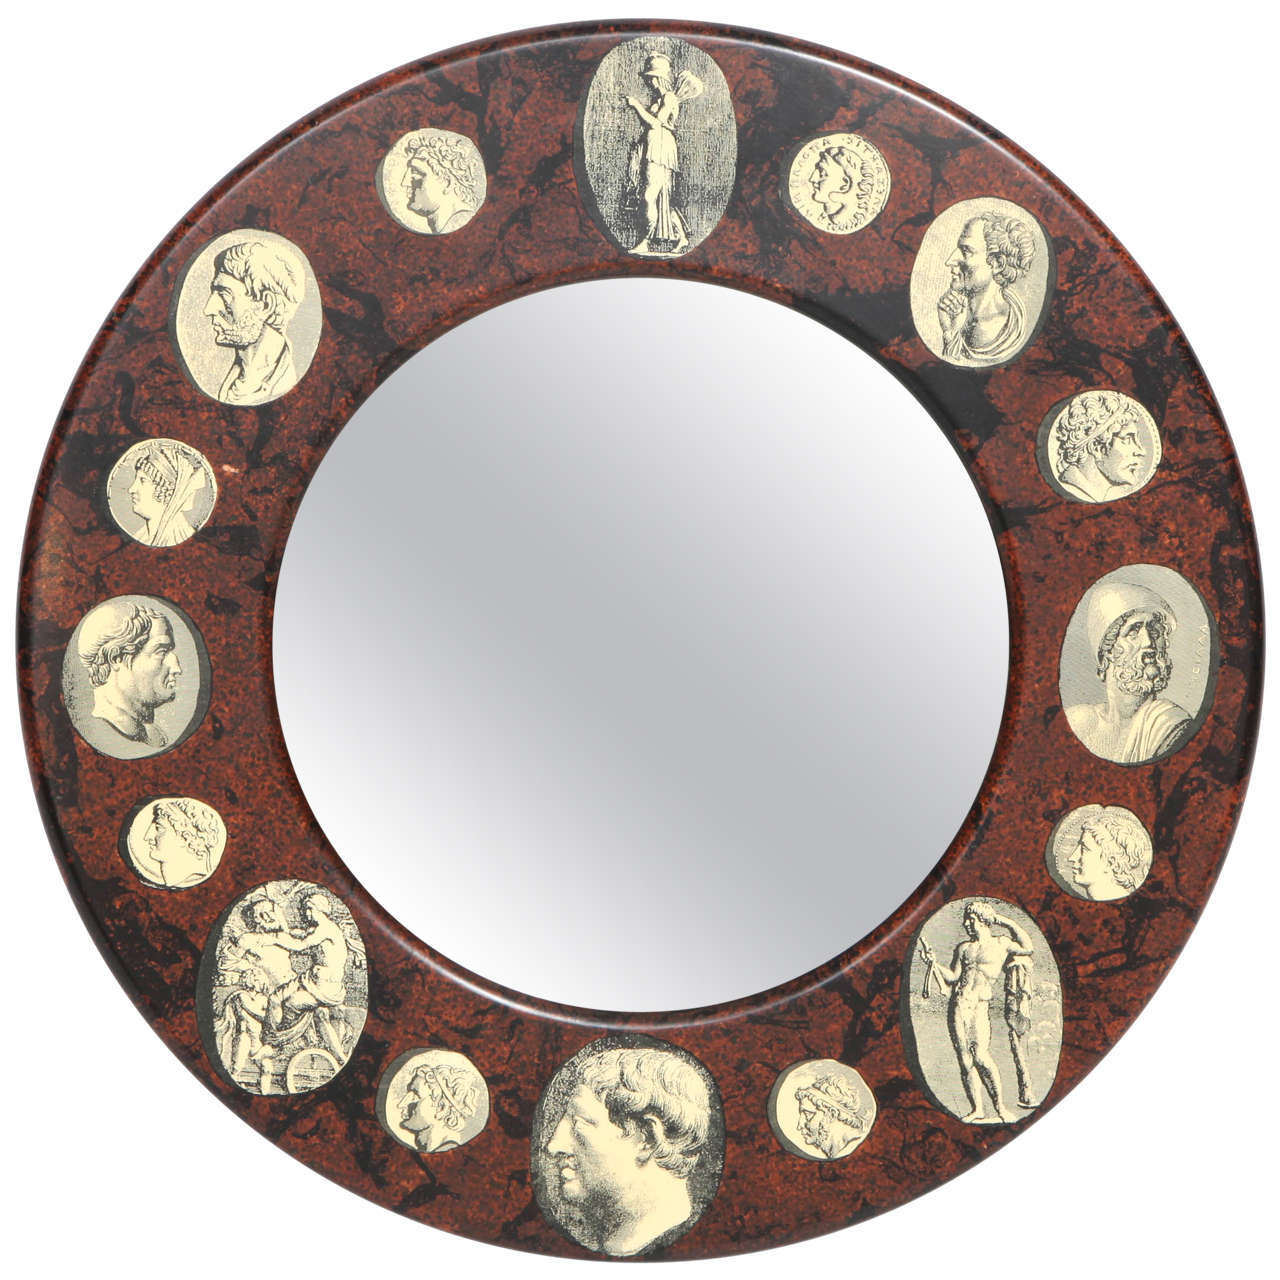 Rare mirror designed by Piero Fornasetti